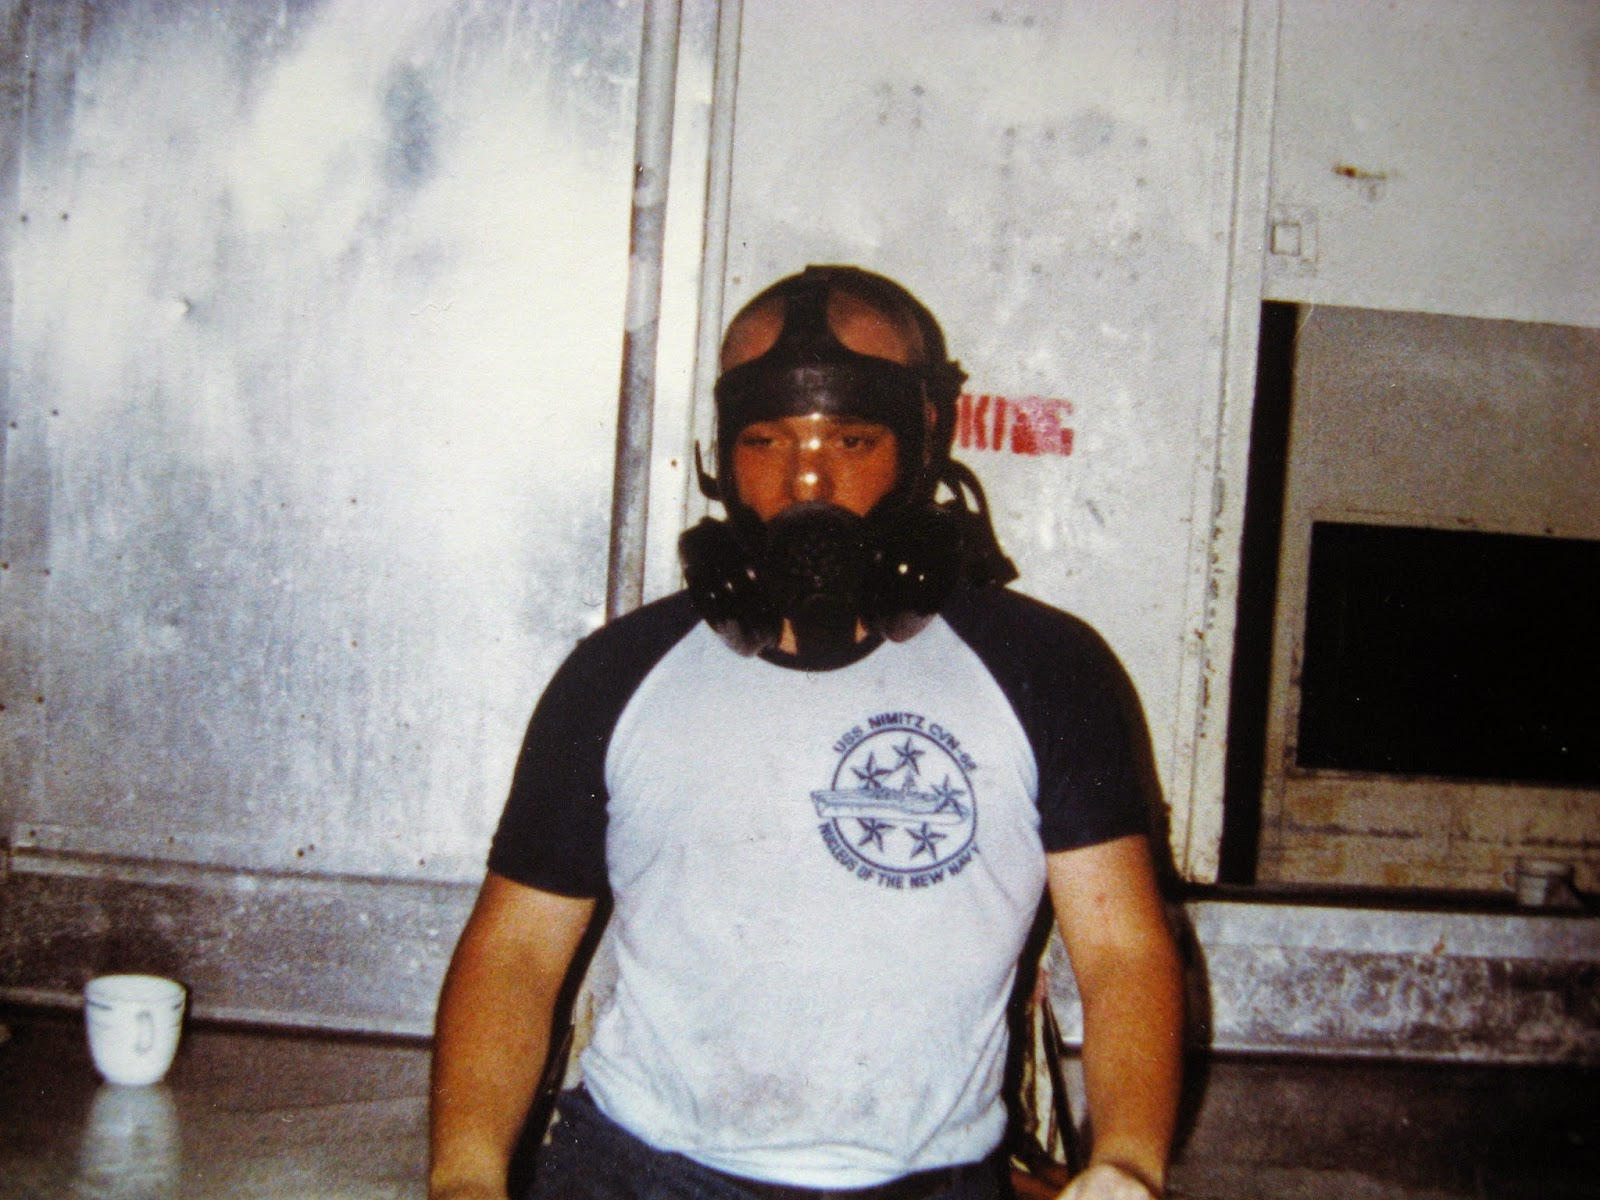 Billy Scire in his gas mask USS Nimitz 1982/83